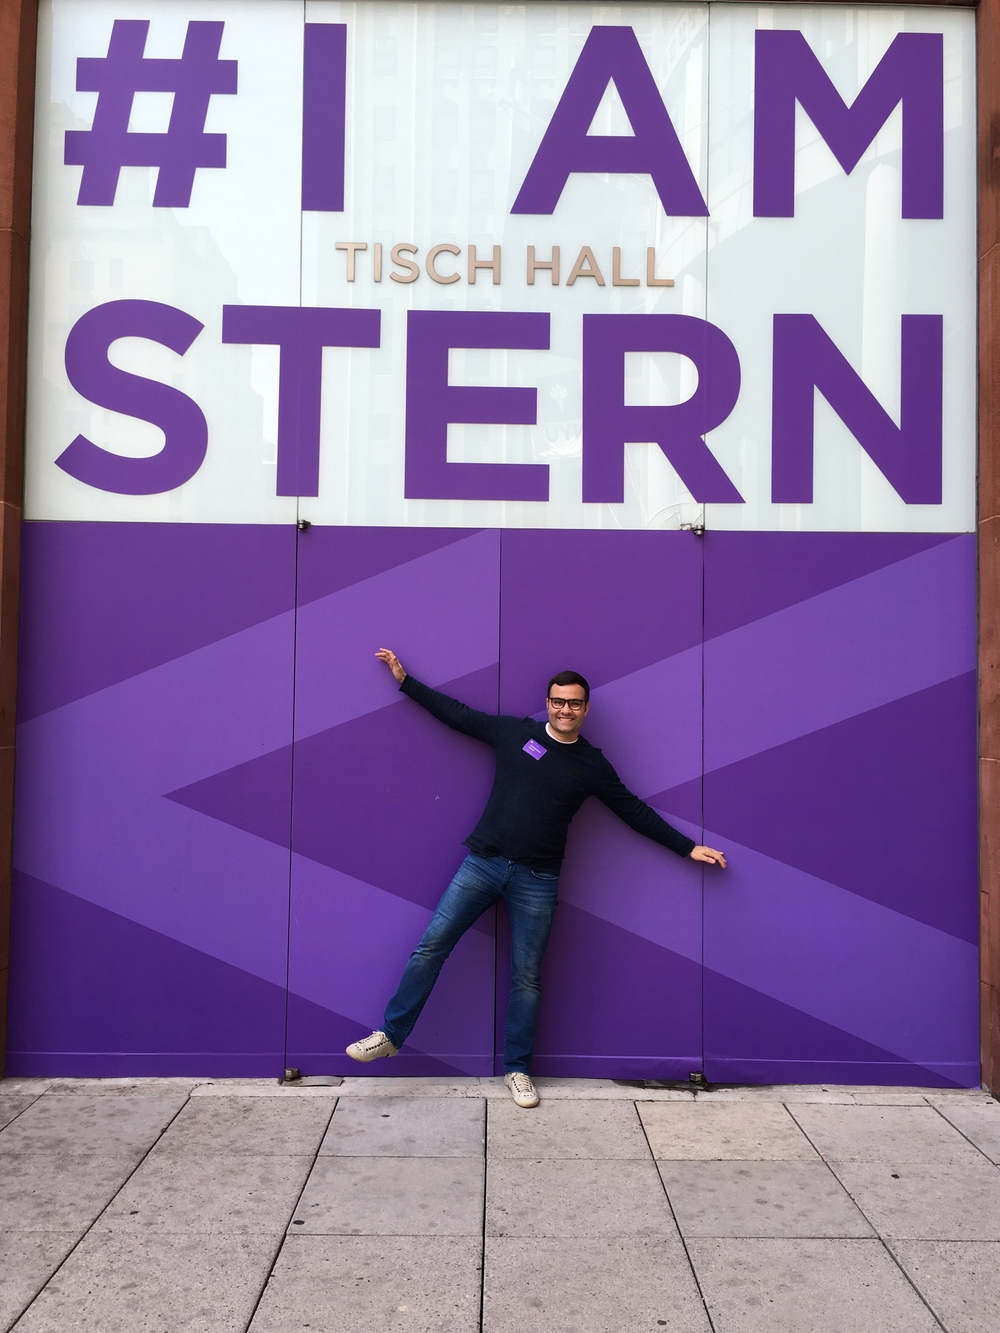 In front of Tisch Hall